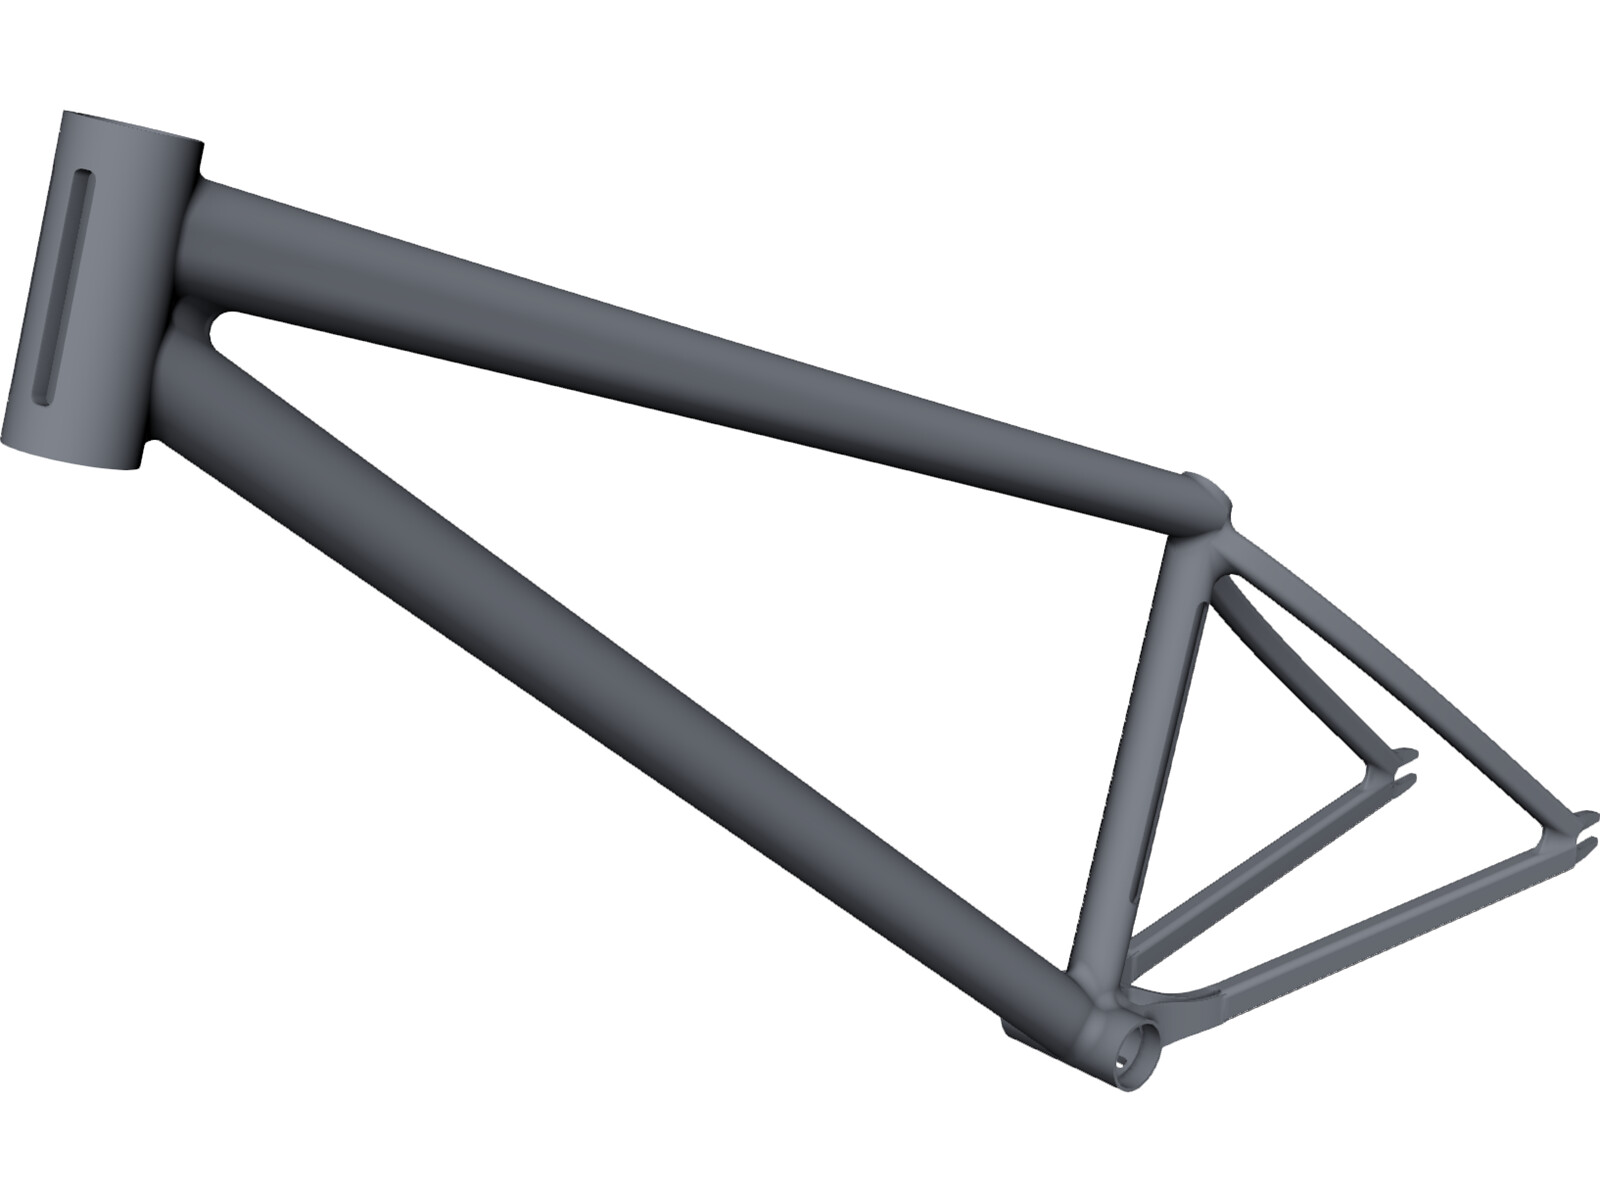 Dirt Bike Frame 3D CAD Model - 3D CAD Browser